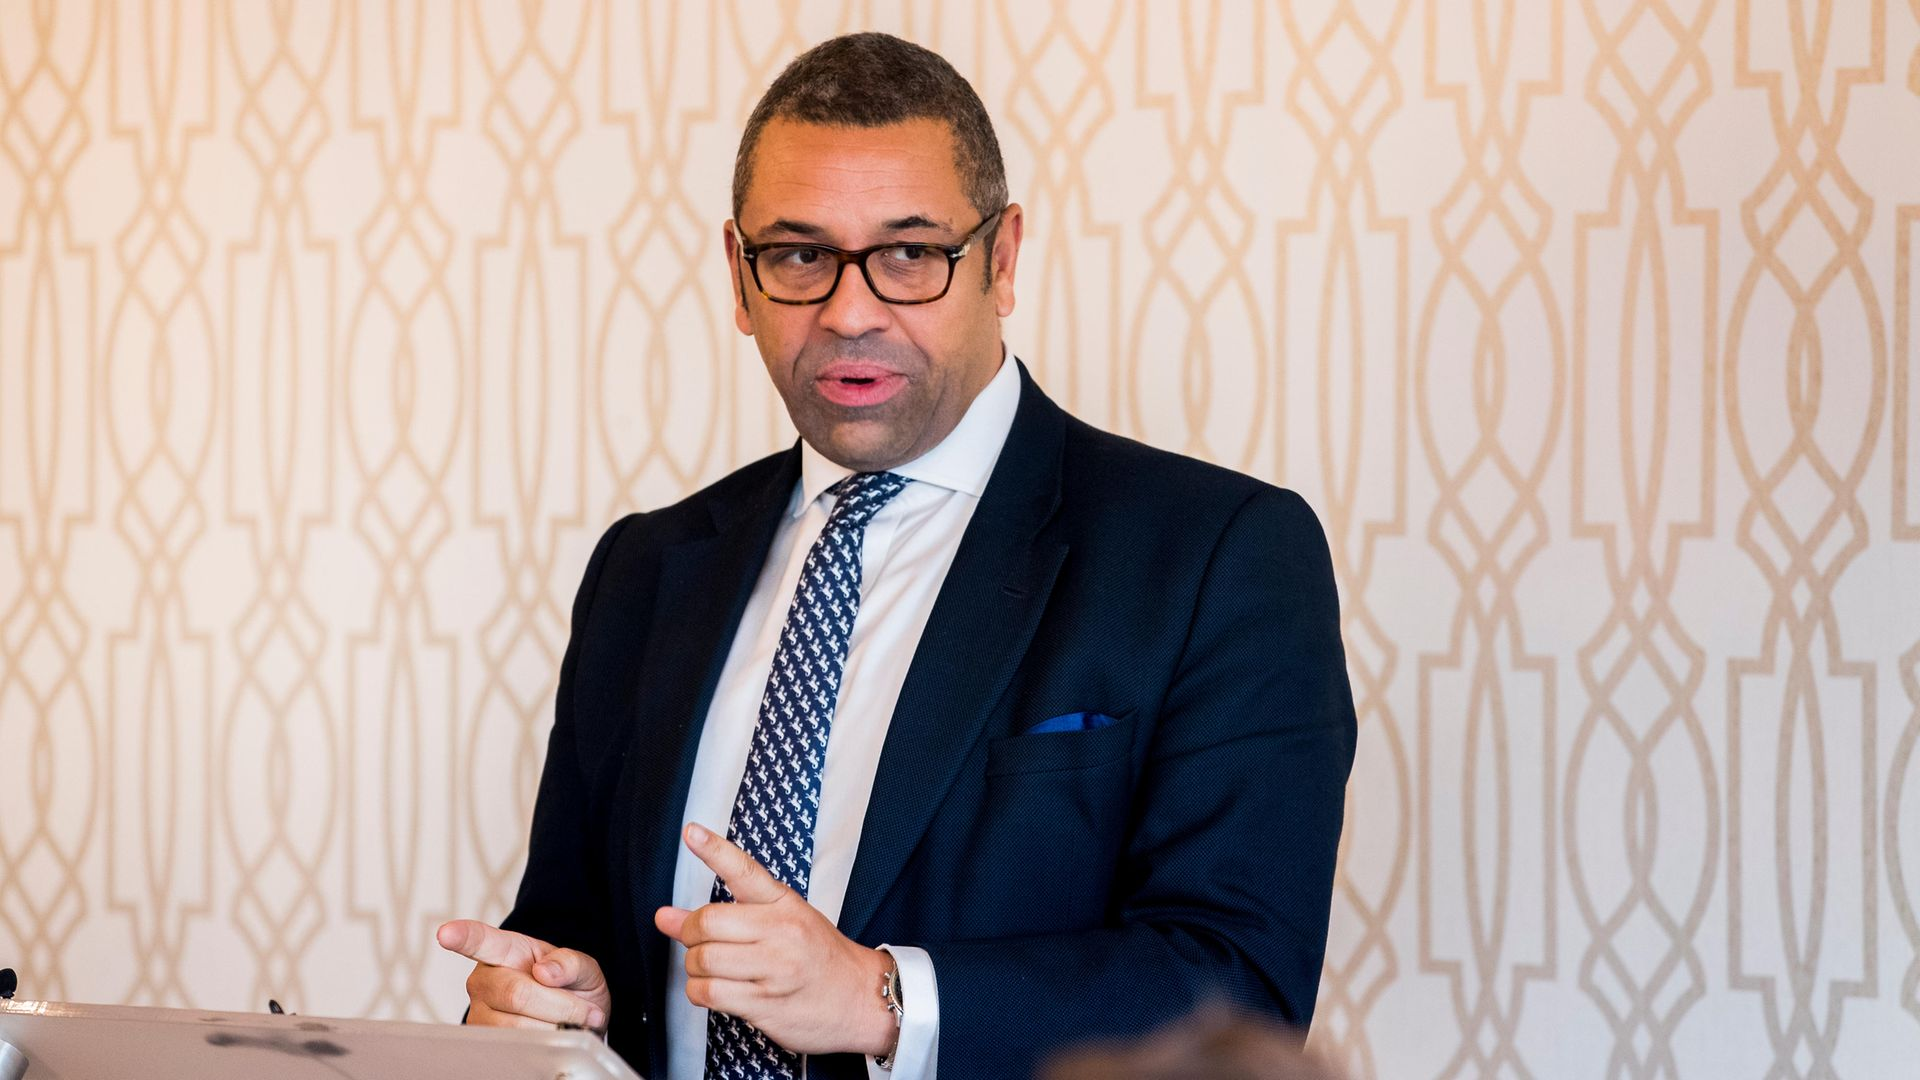 """James Cleverly said the international community is """"pulling together"""" to restore permanent peace in the region - Credit: PA"""